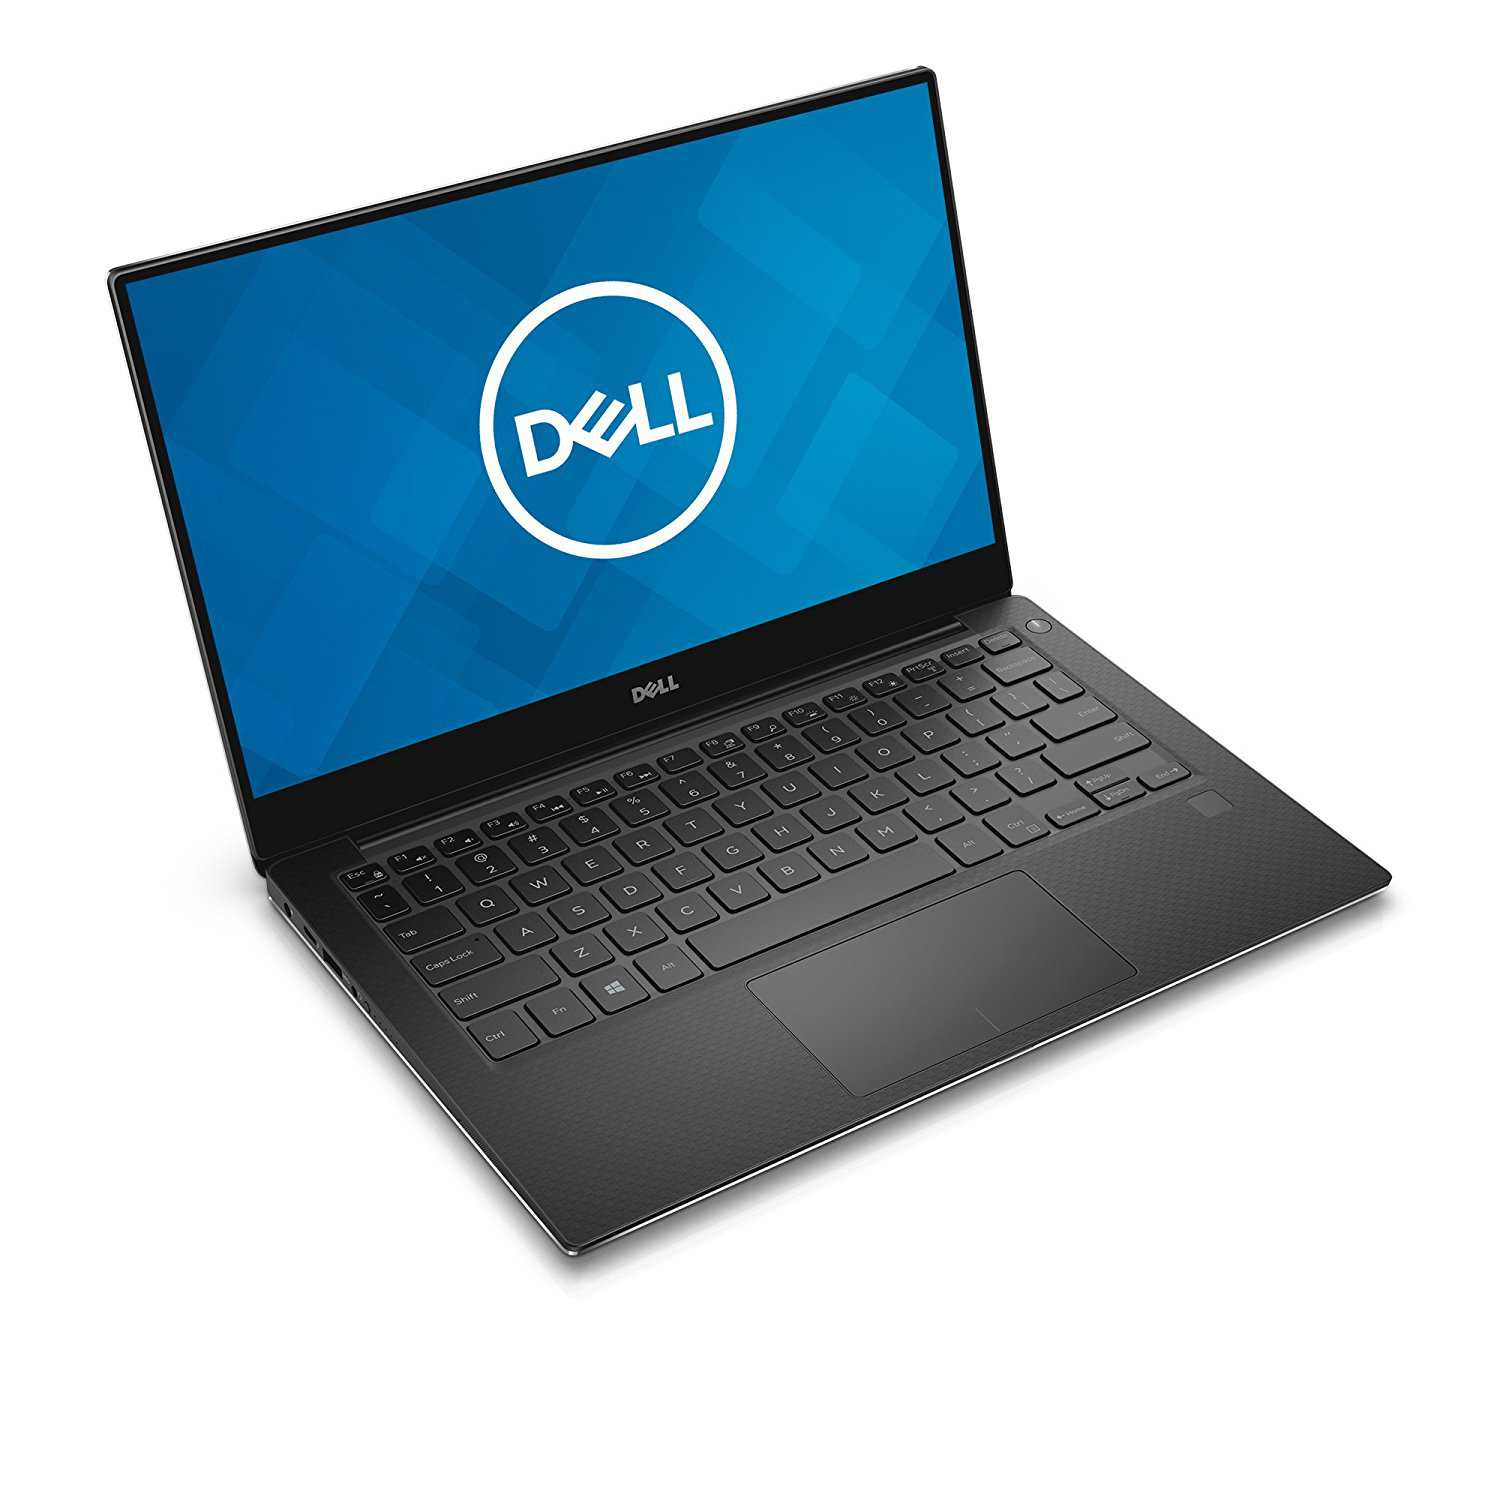 Dell XPS 13 9360 13.3' Touchscreen Laptop i5-7200U 8GB 128GB SSD Windows 10 Home